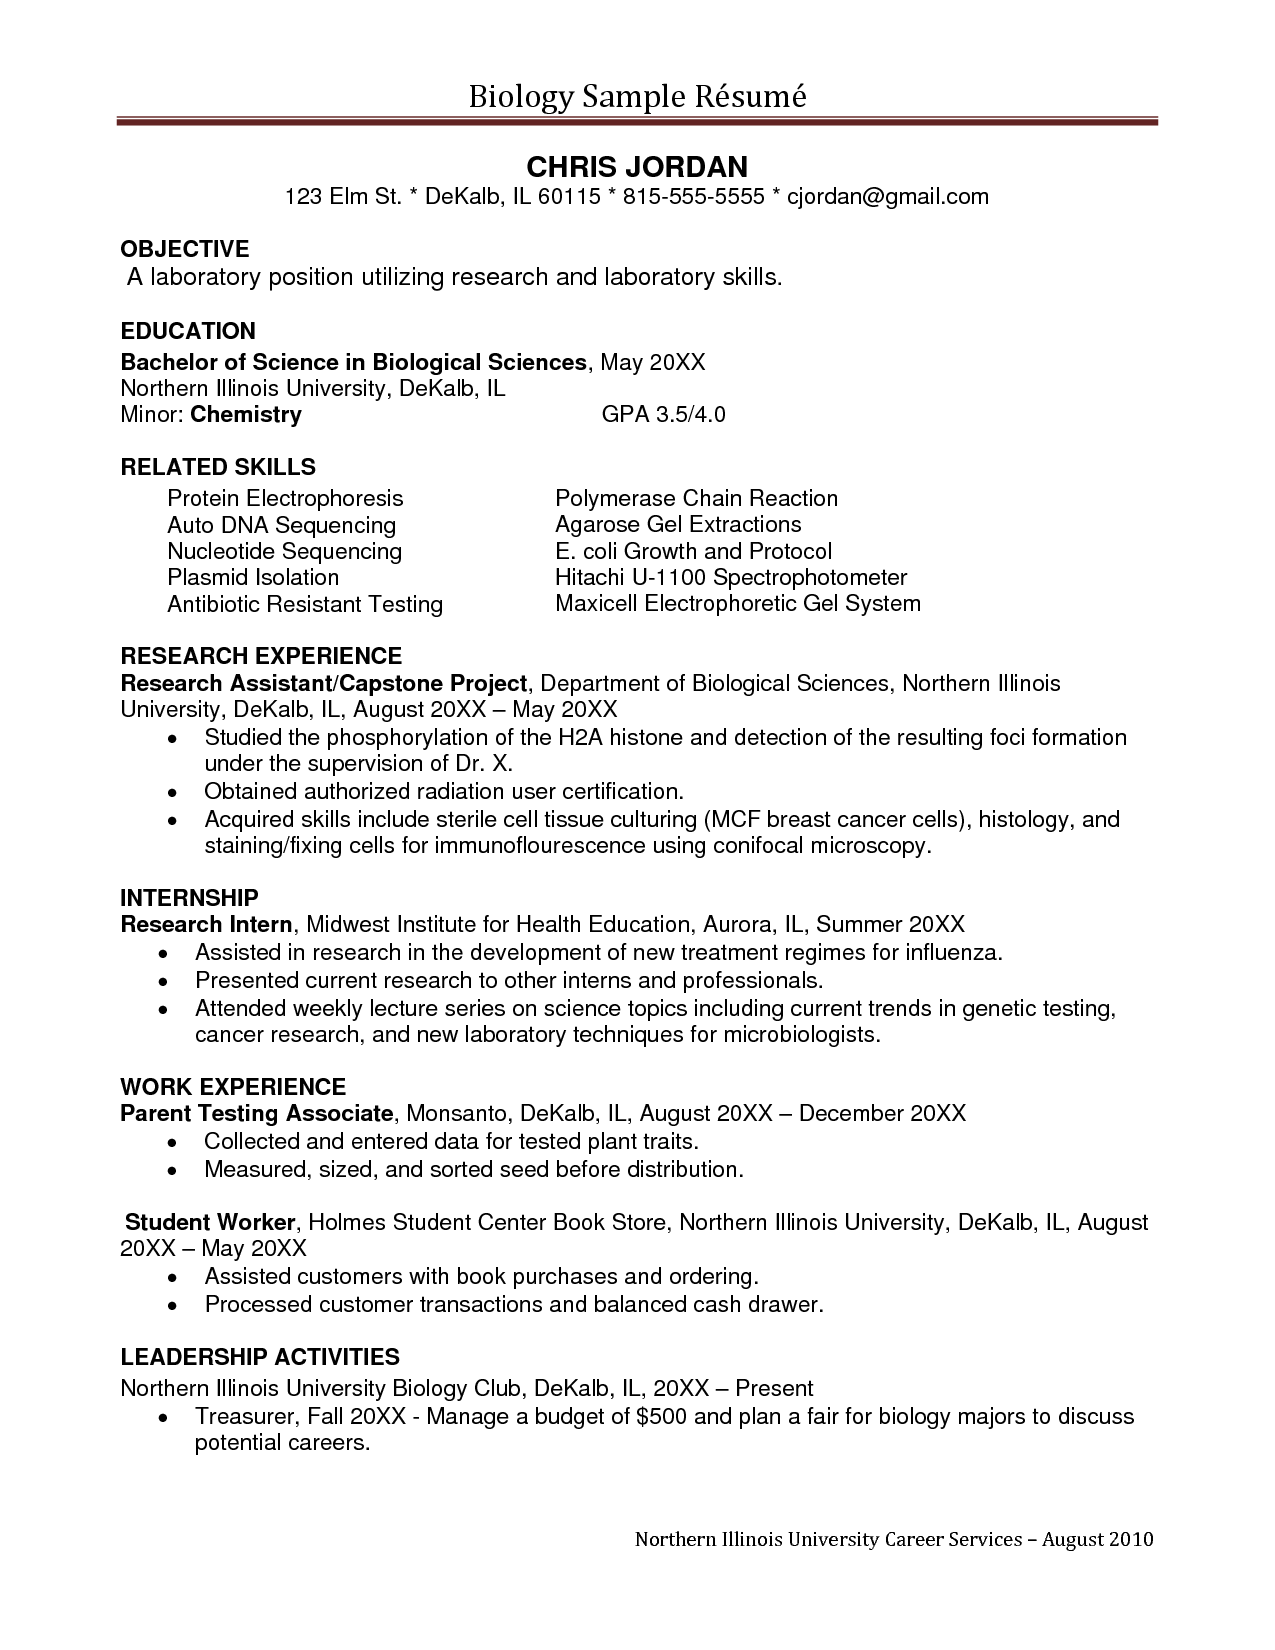 Research Assistant Resume Sample Objective Research Assistant – Objective Sample for Resume